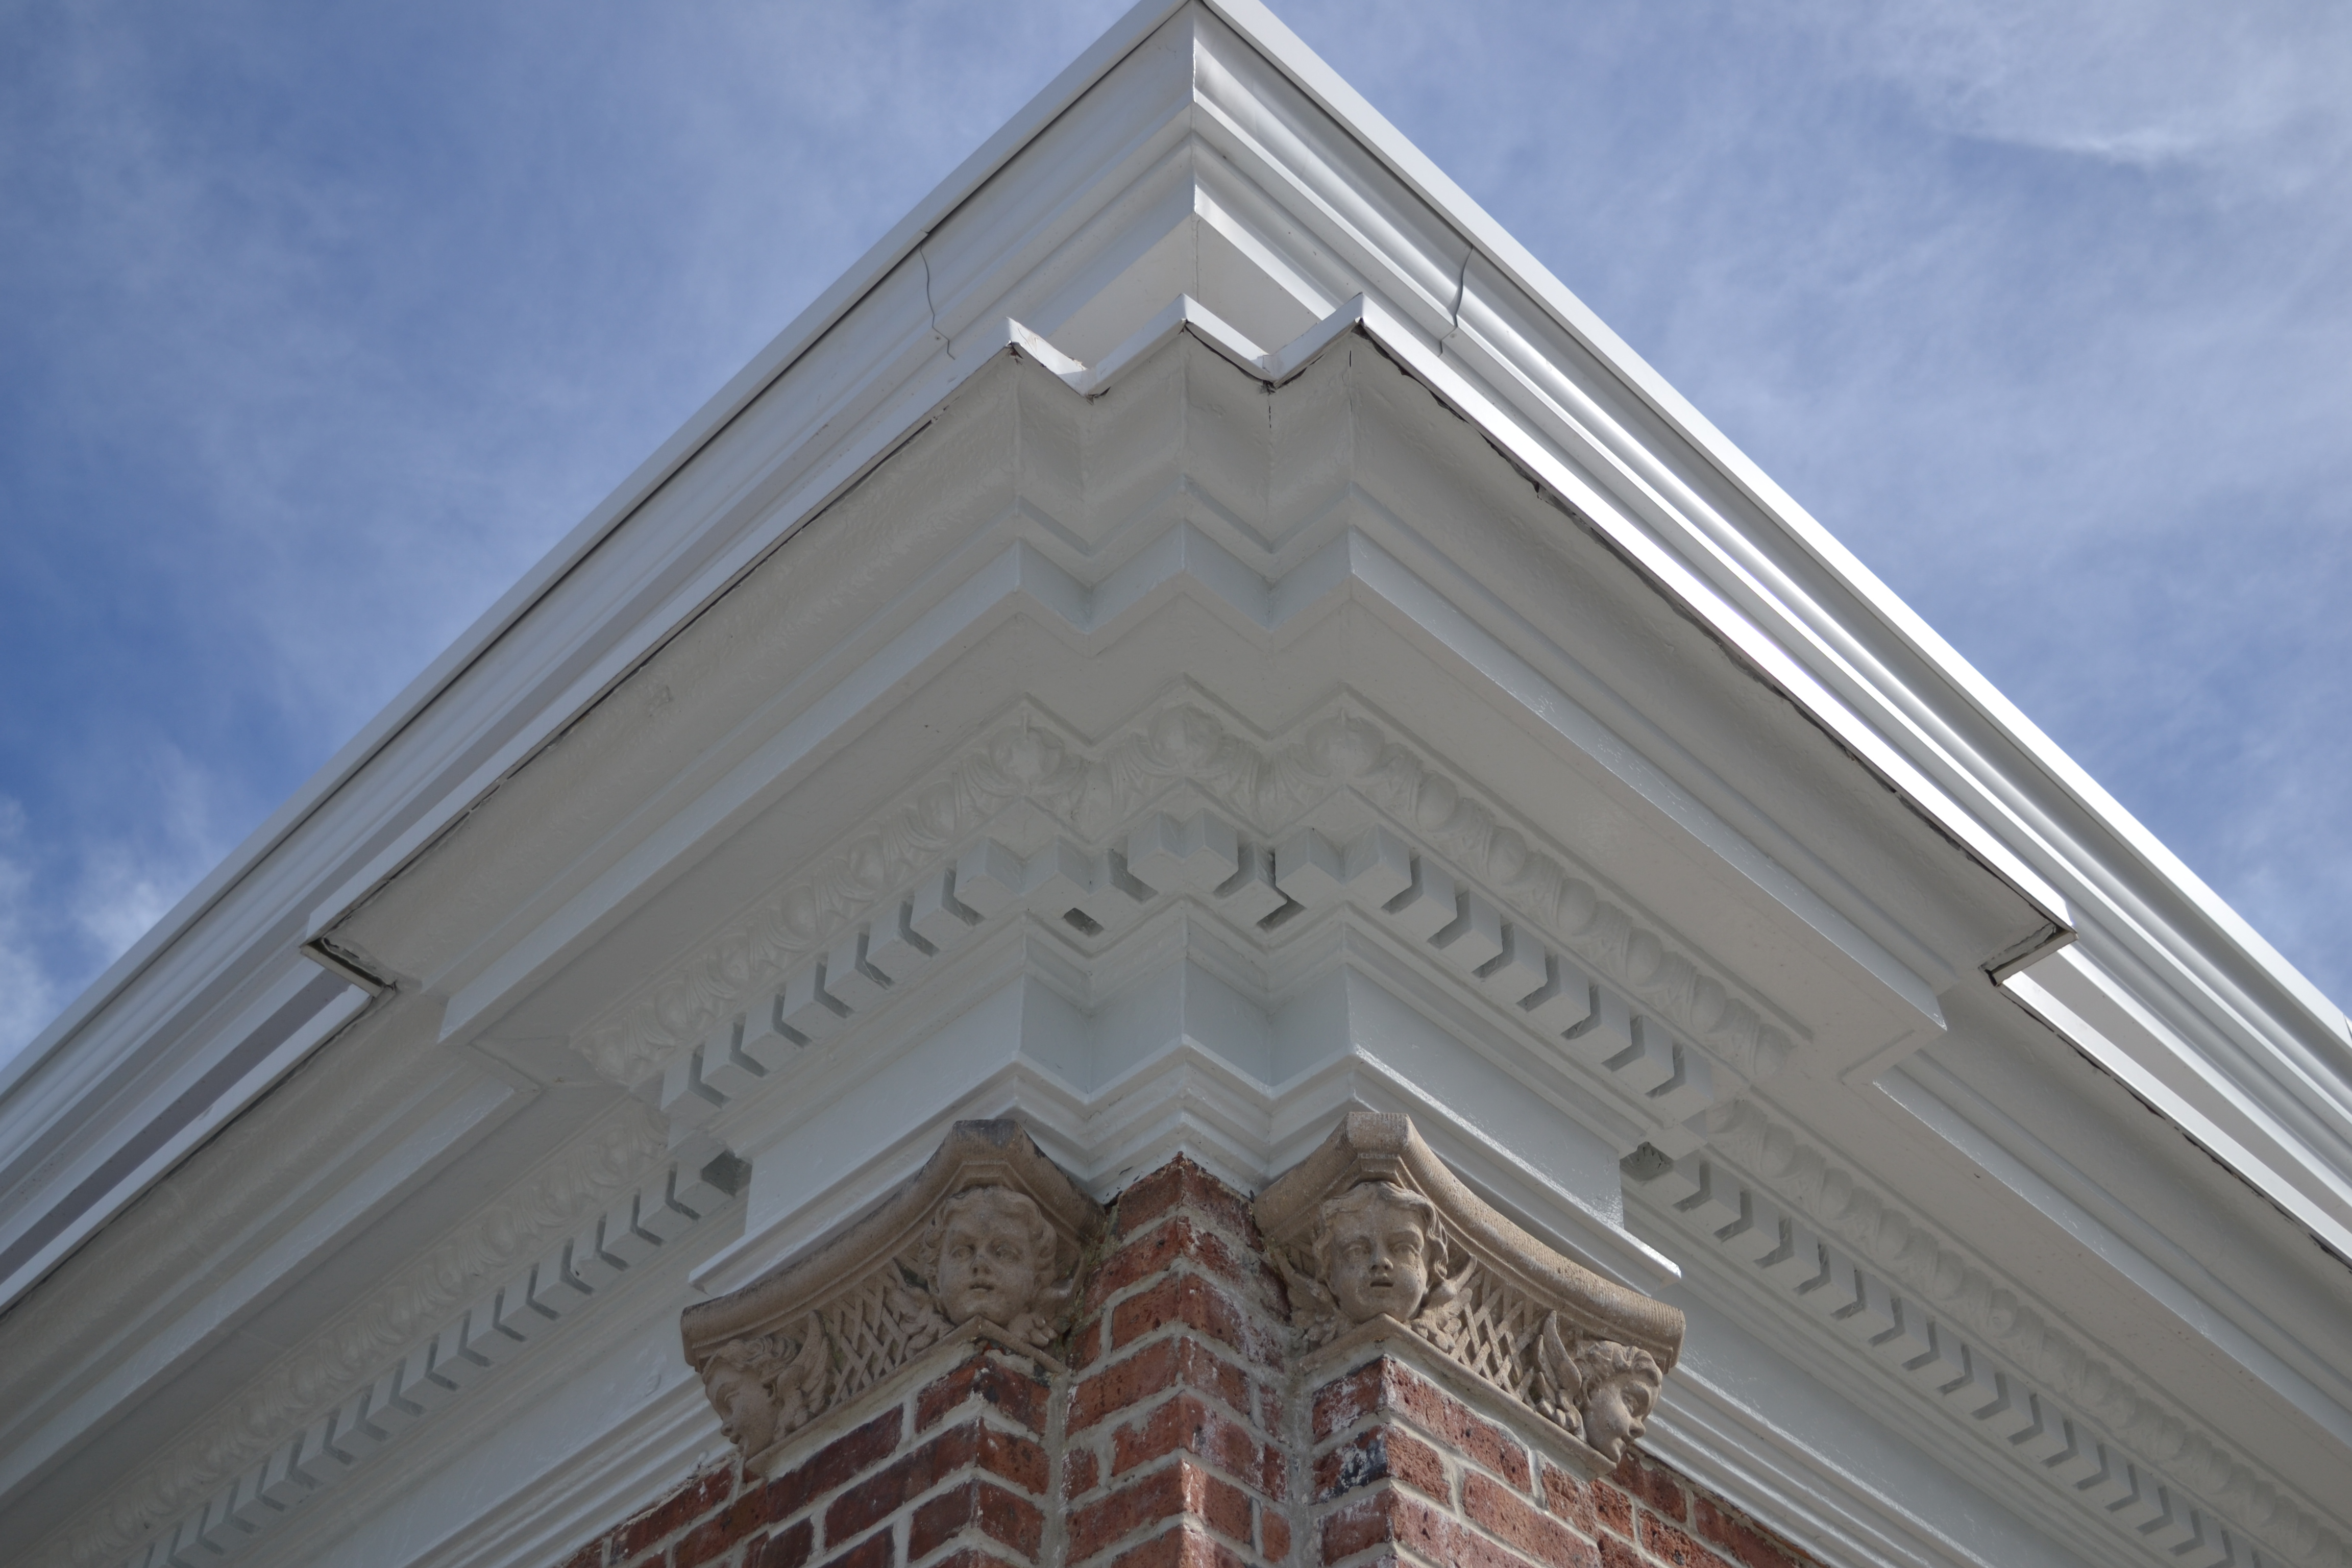 Roofline detail, including the cherubs